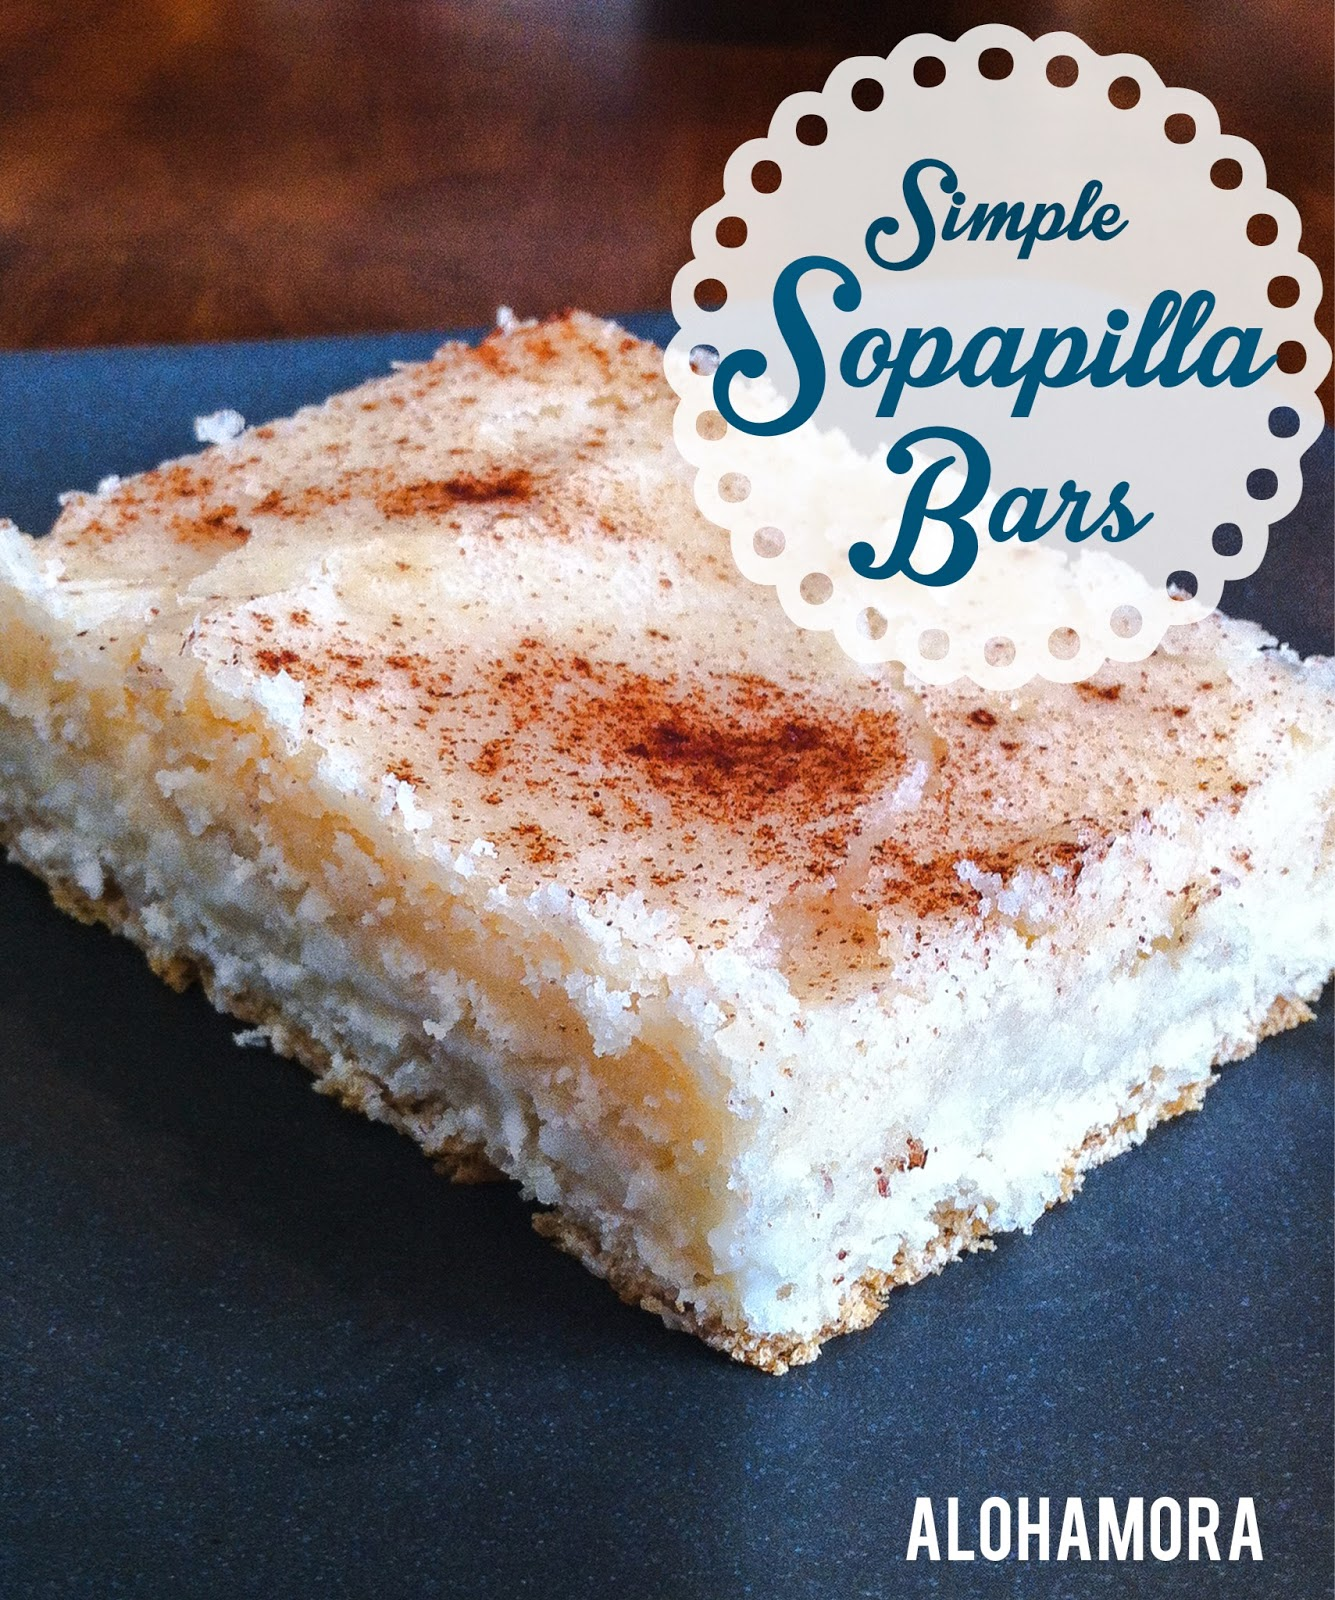 Simple to make and amazingly delicious SOPAPILLA BARS with a cheesecake like filling. Alohamora Open a Book http://www.alohamoraopenabook.blogspot.com/